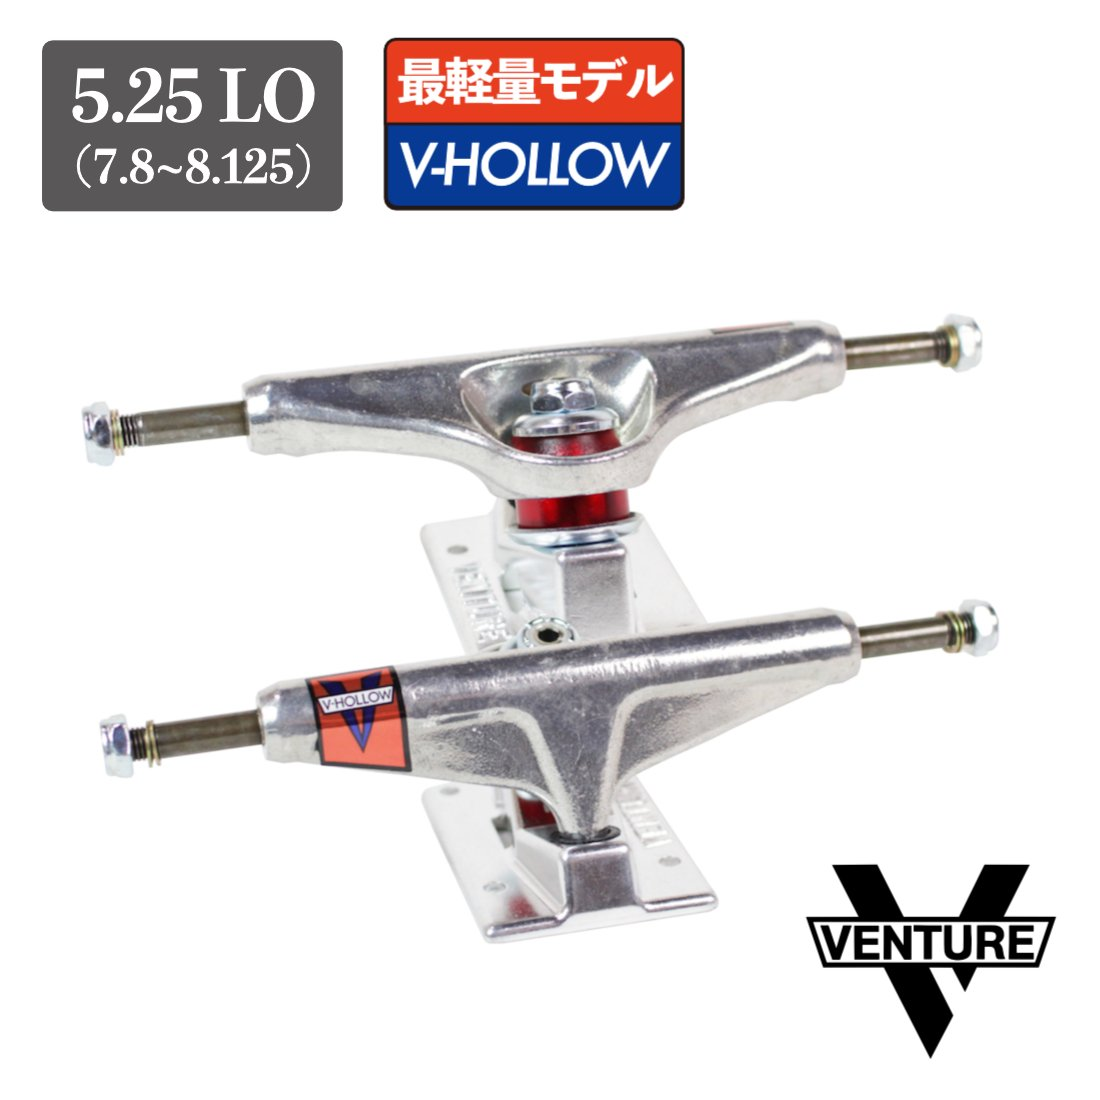 【VENTURE】V-Hollow Lights - 5.25 LO